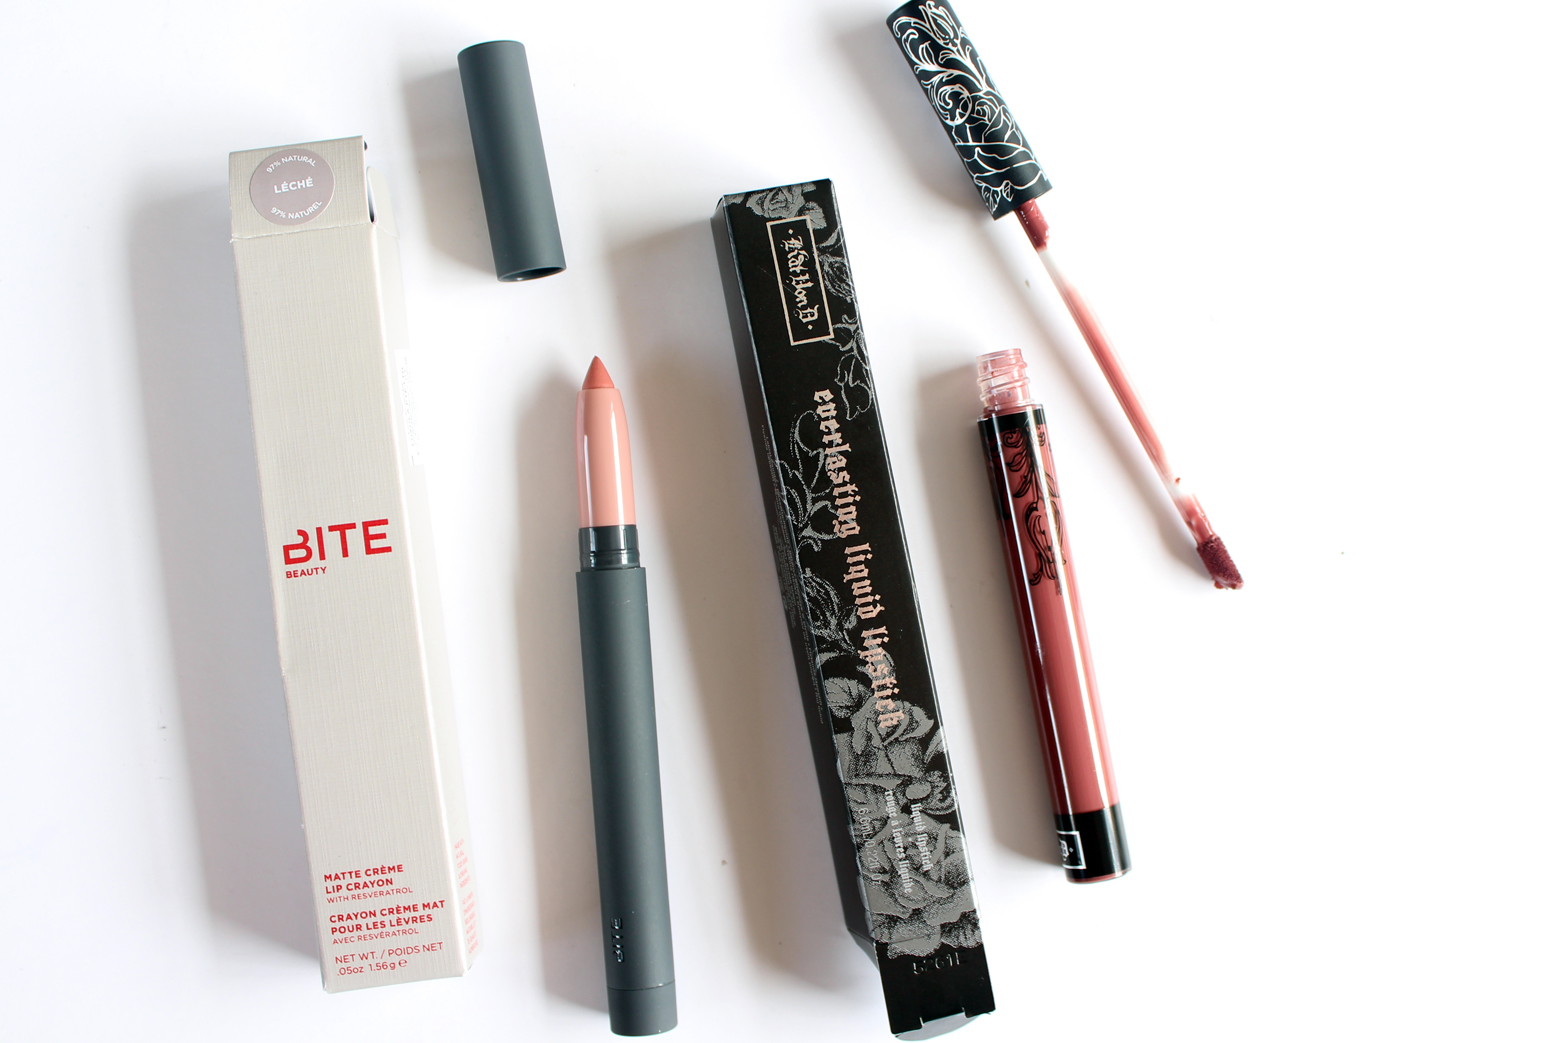 SEPHORA NEW ZEALAND | Haul - Reviews + Swatches - Bite Beauty Matte Creme Lip Crayon in Leche + Kat Von D Everlasting Liquid Lipstick in Lolita - CassandraMyee